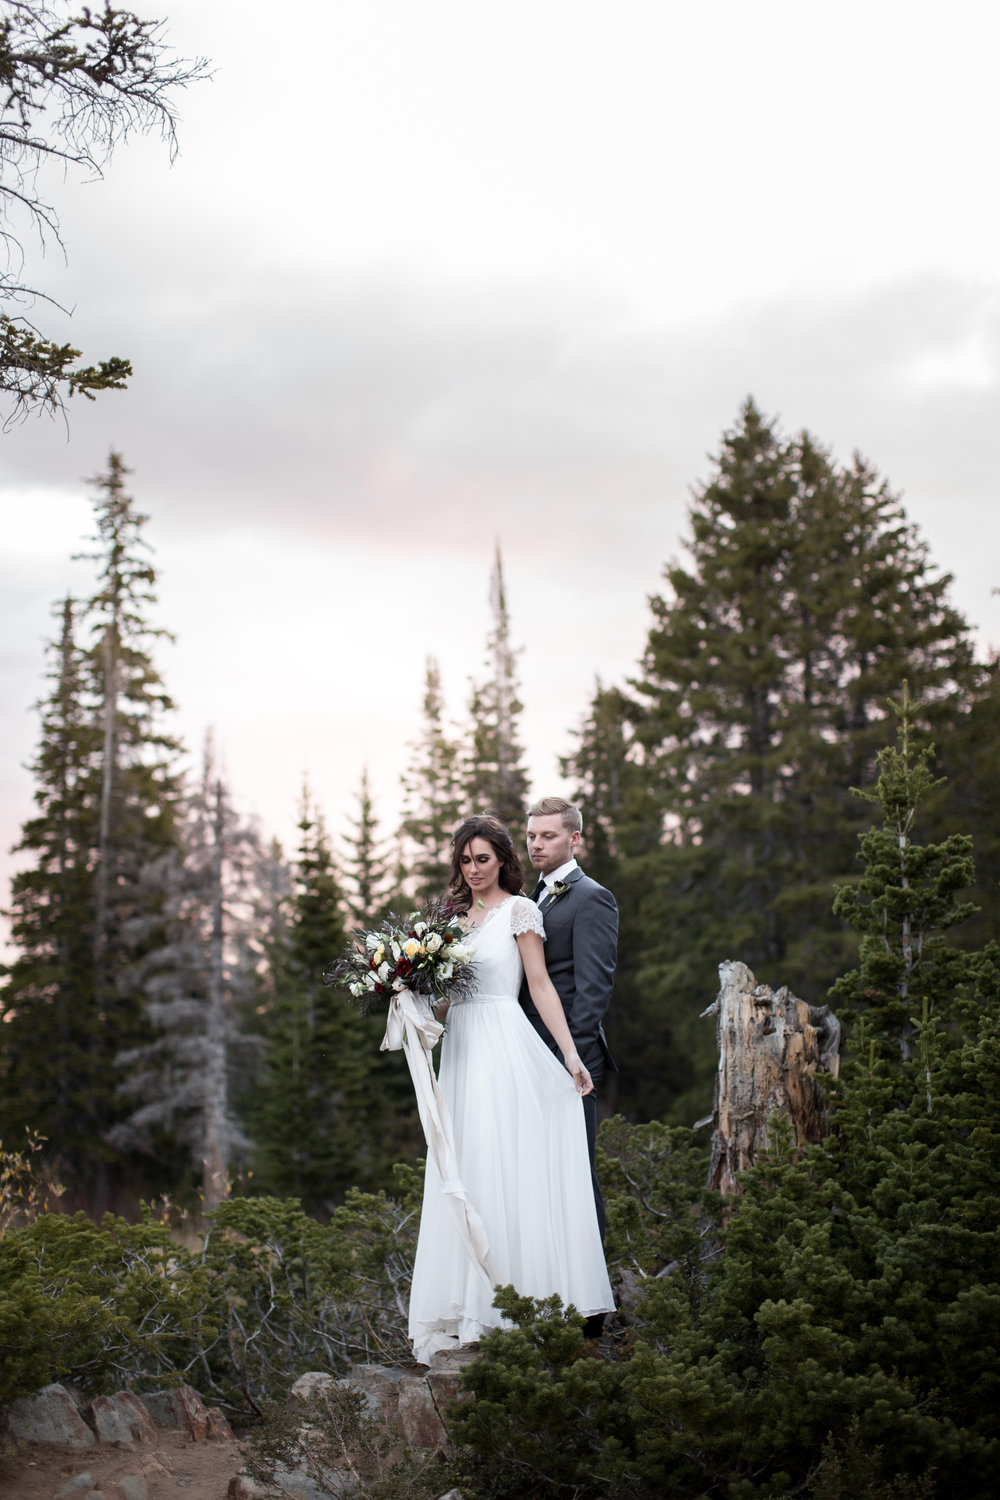 UtahValleyBrideShootTR2016 (7 of 110).jpg